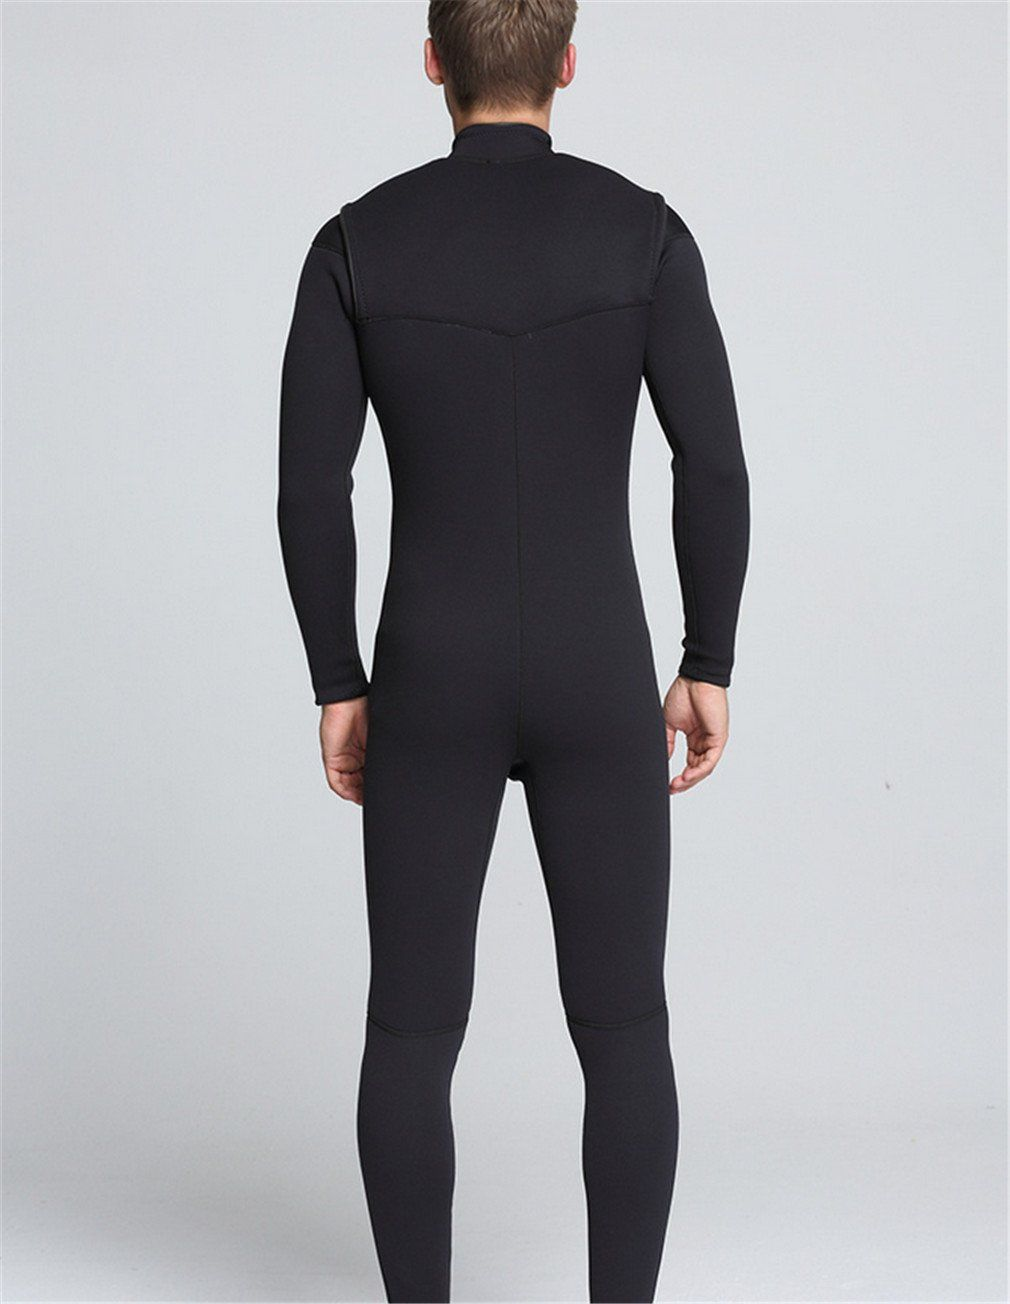 cfbe9411c9 Canoeing luckyu man wetsuit diving suit snorkeling surfing kayak jpg  1010x1304 Canoe suit